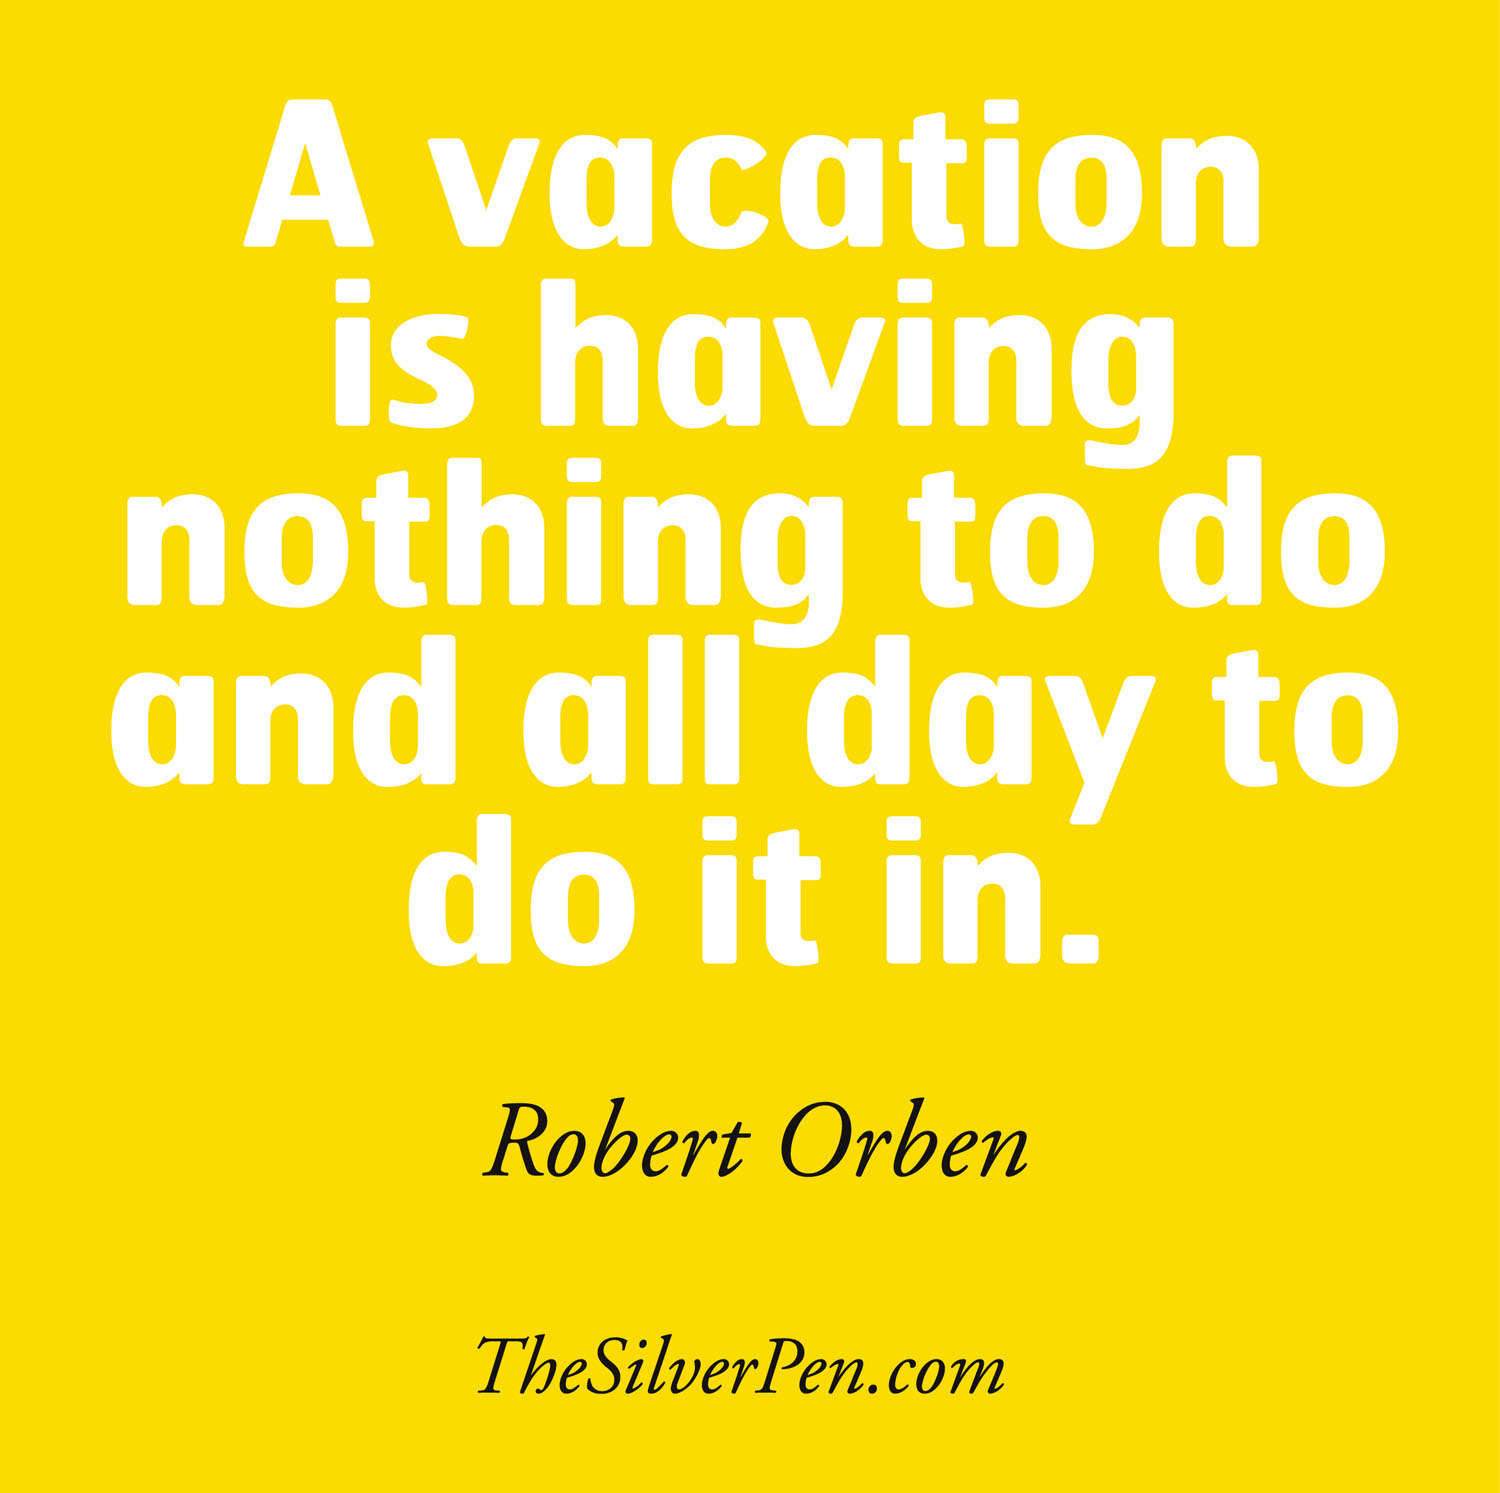 Robert Orben's quote #1